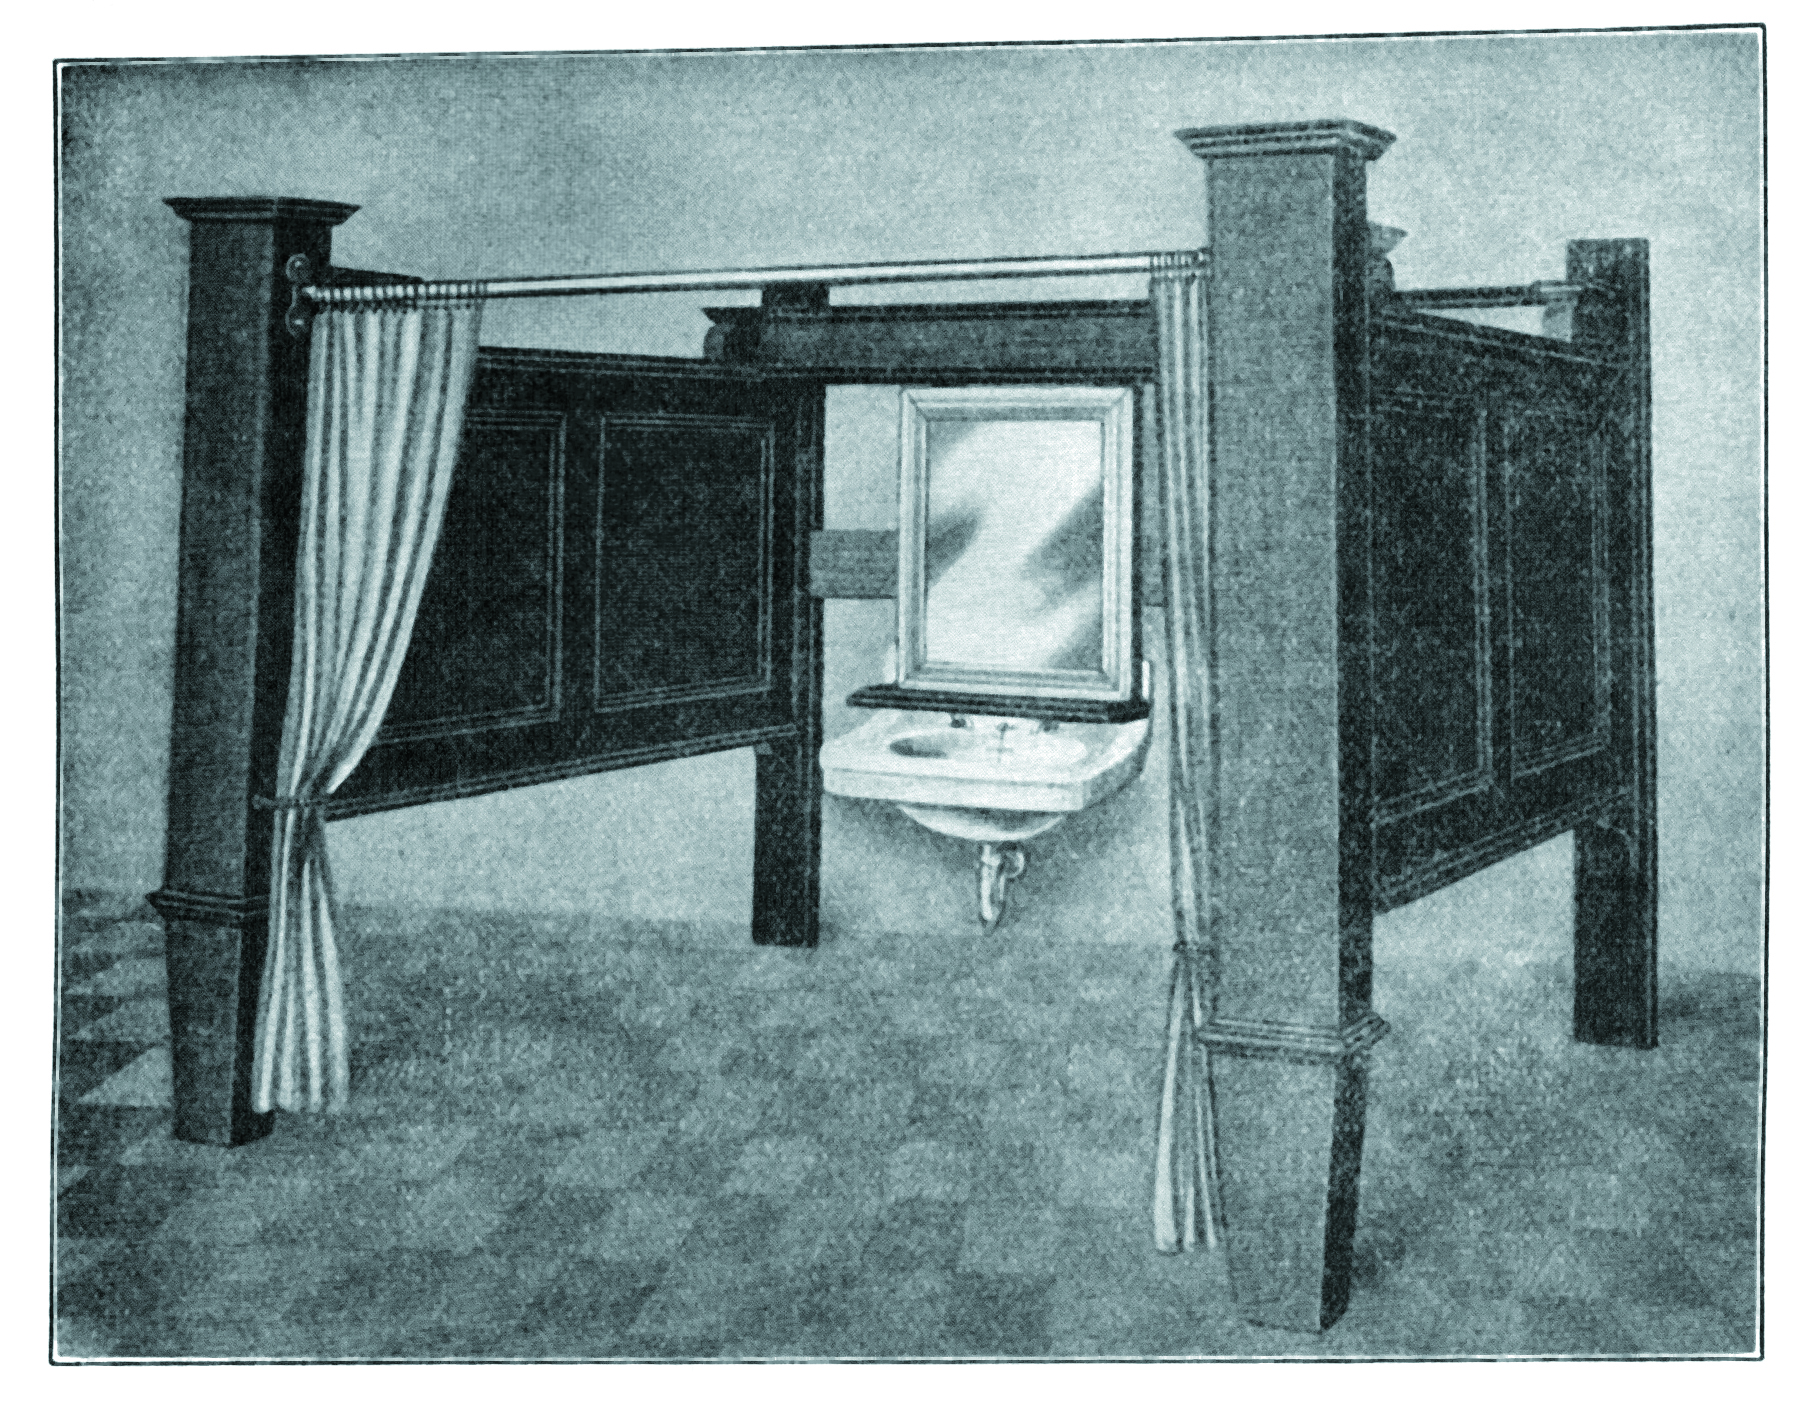 From Holland & O'Donnell, this prefab booth with sliding mirror, shelf, lavatory and curtains was available for $160.